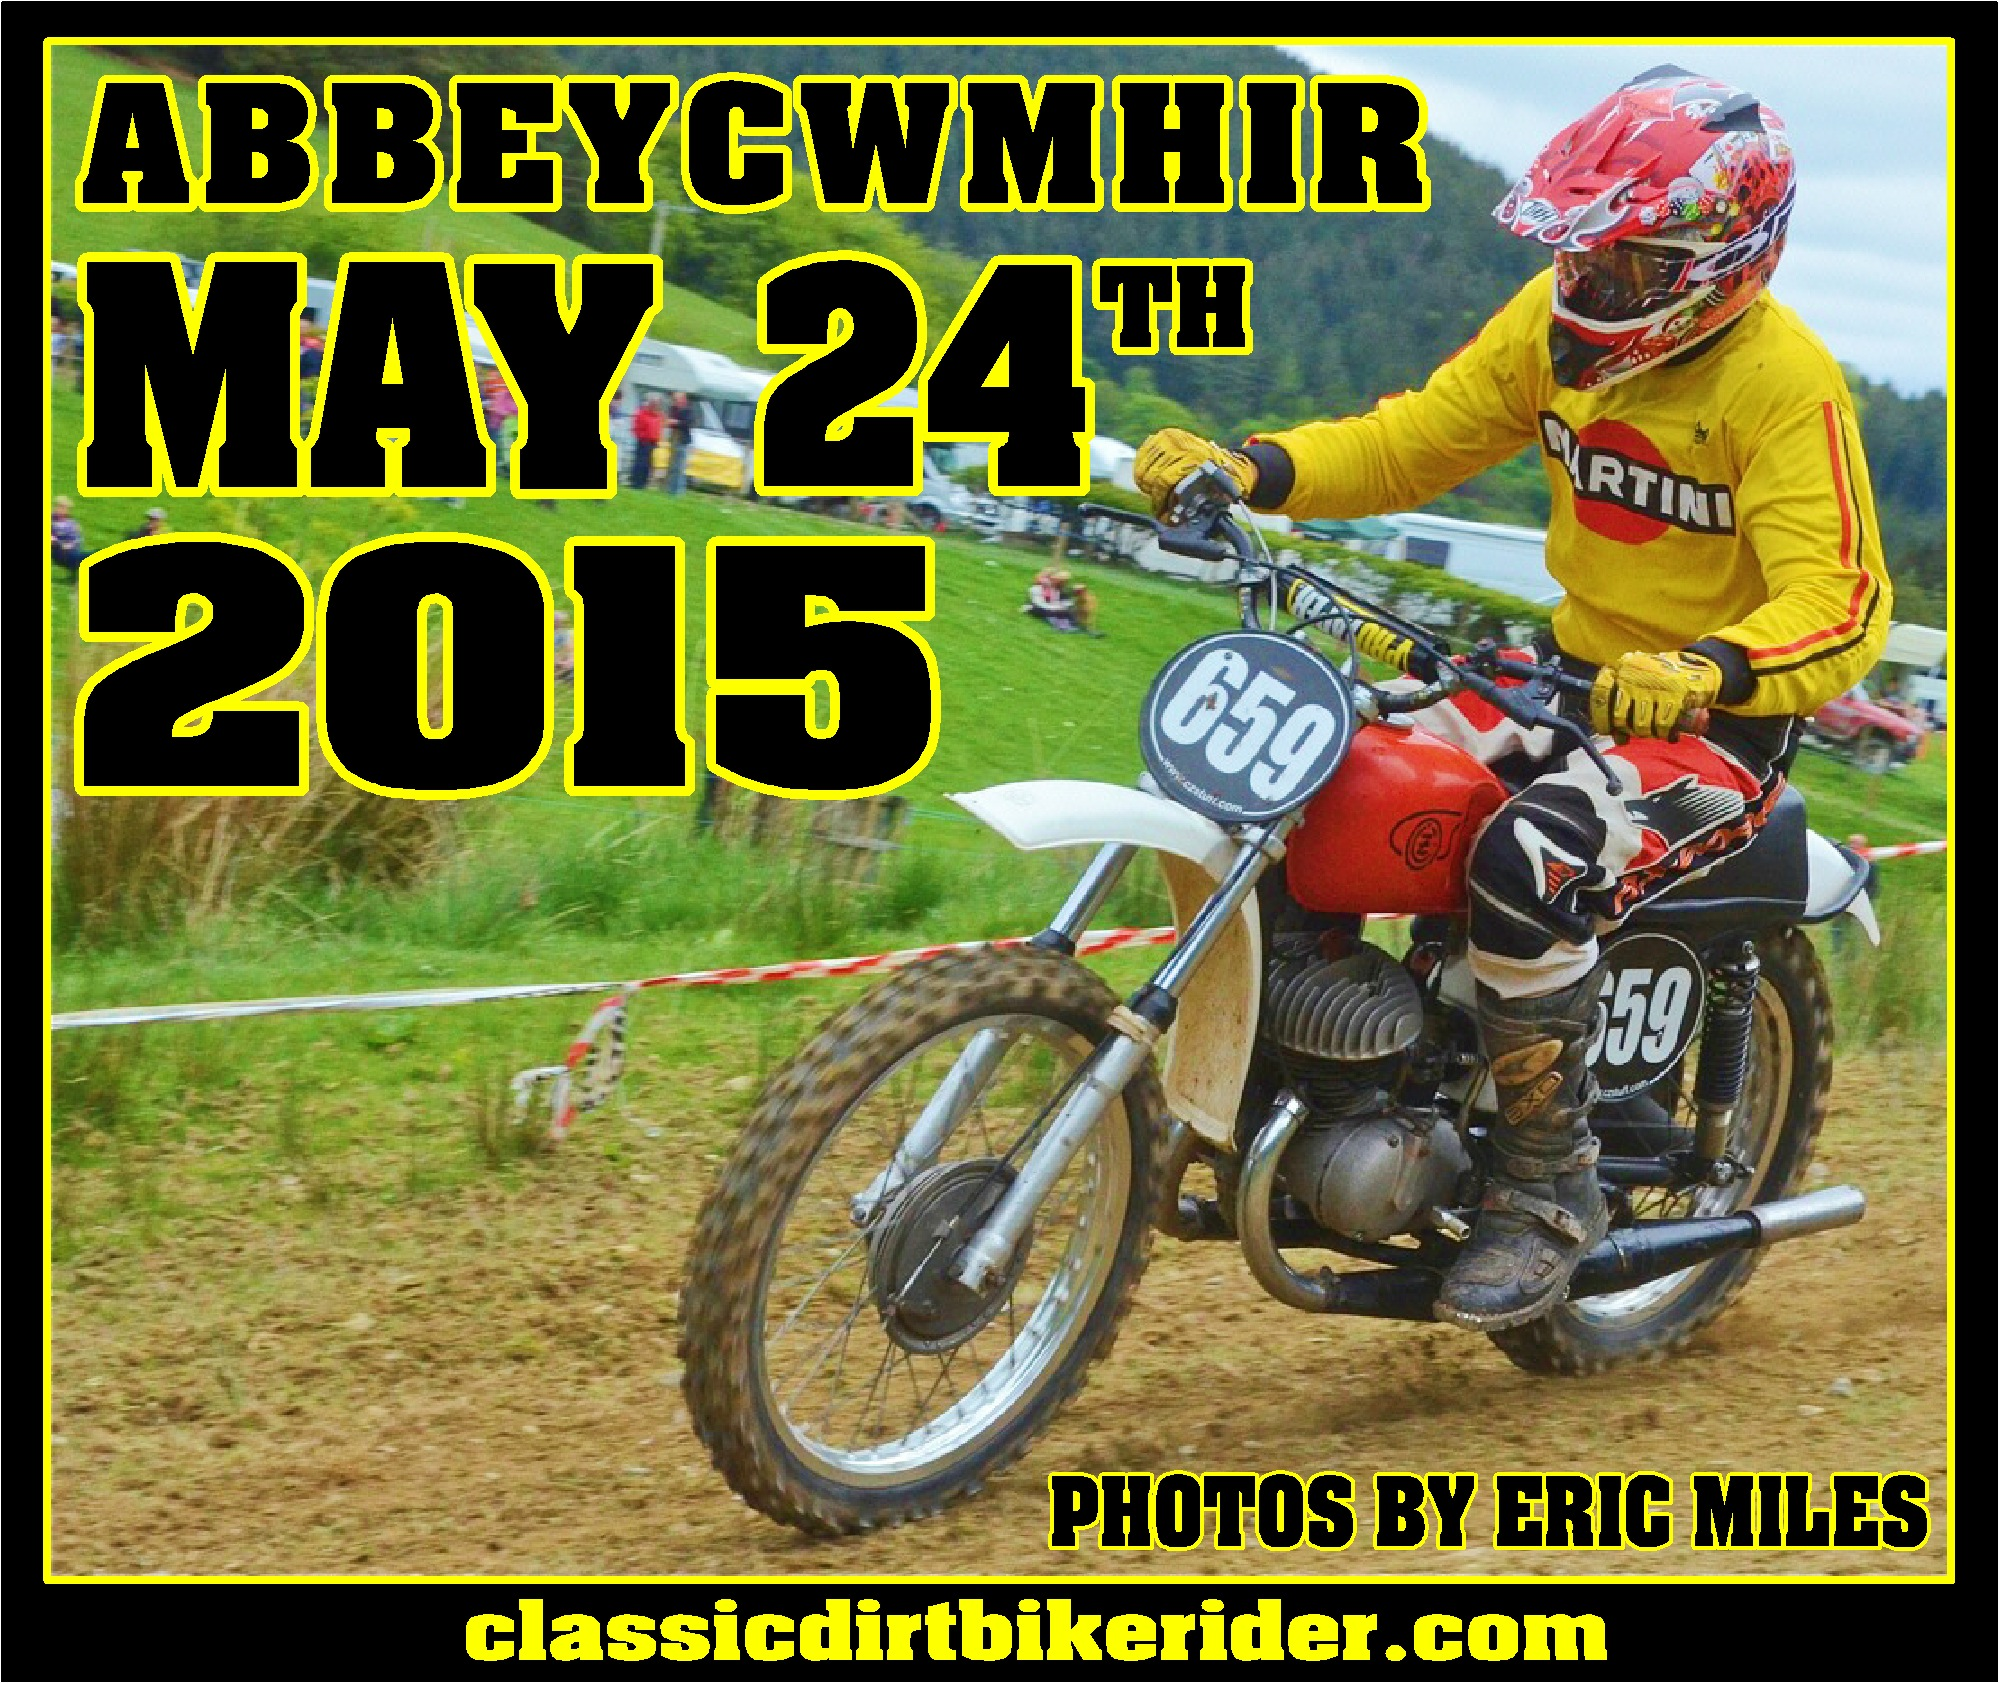 abbeycwmhir classic scramble photos pictures May 2015 classicdirtbikerider.com